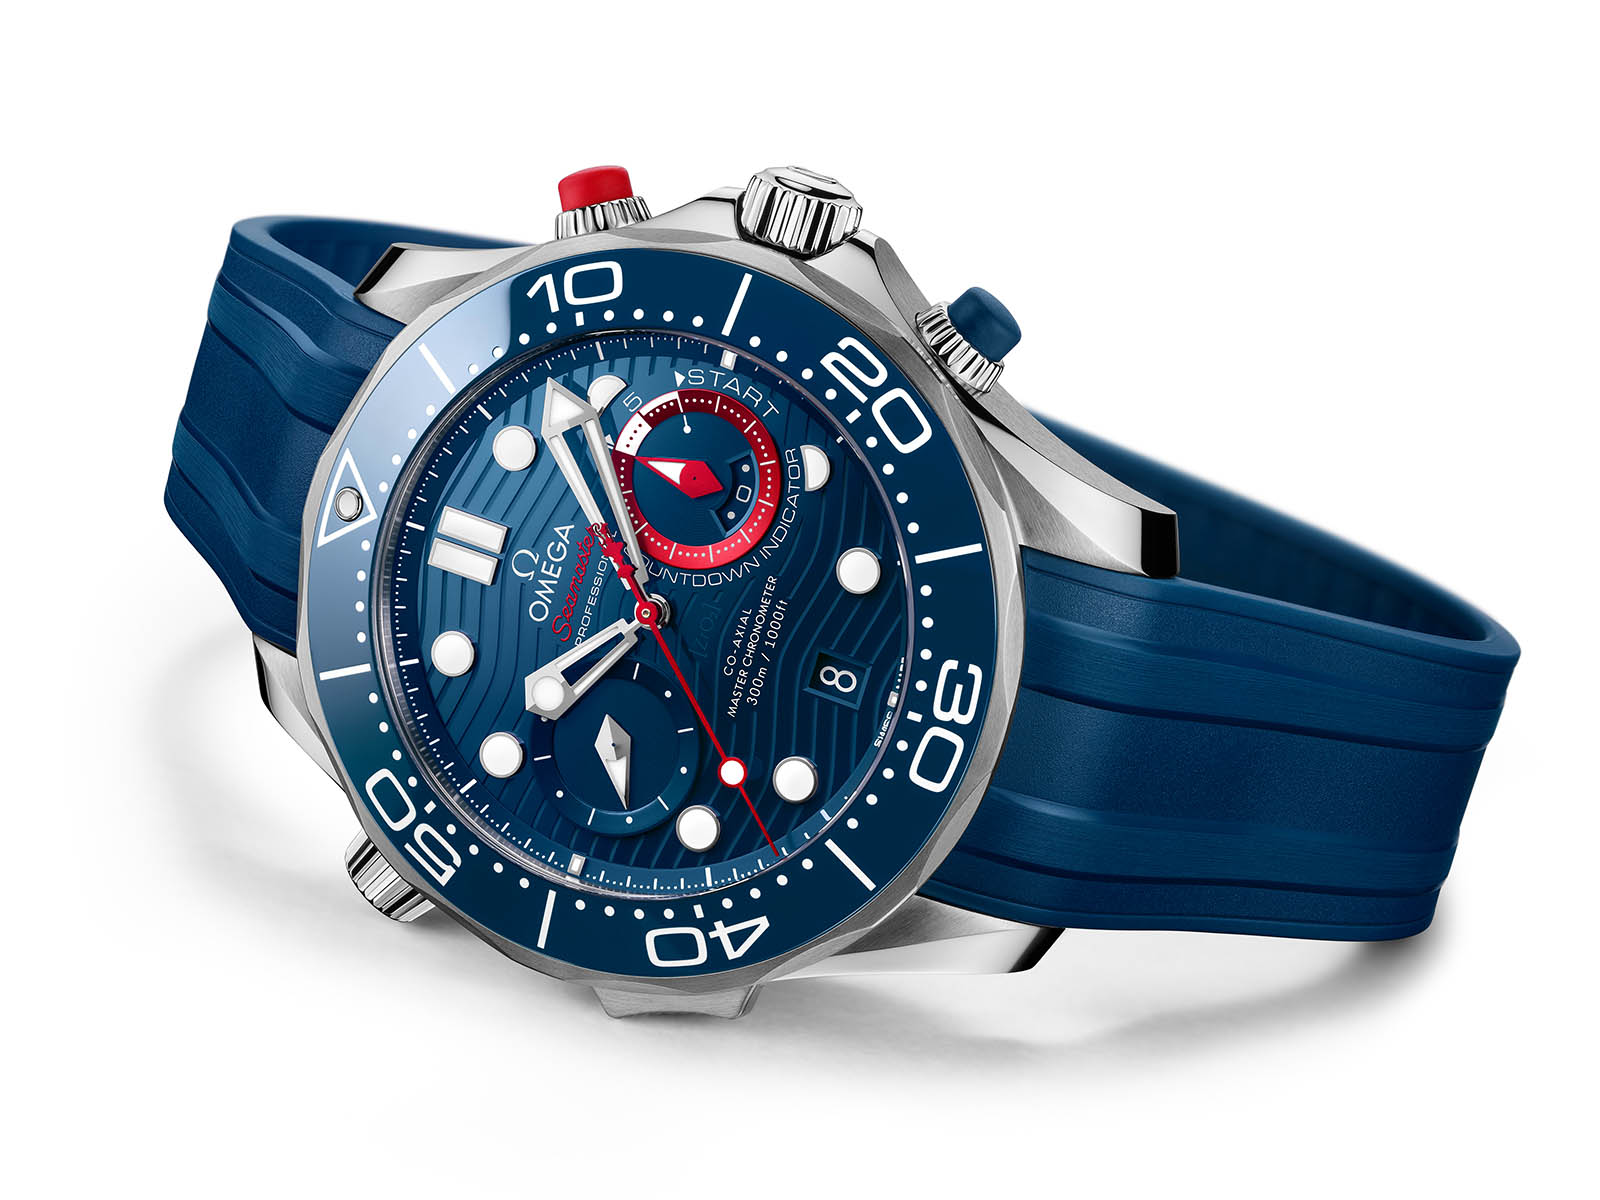 210-30-44-51-03-002-omega-seamaster-diver-300m-america-s-cup-chronograph-1.jpg